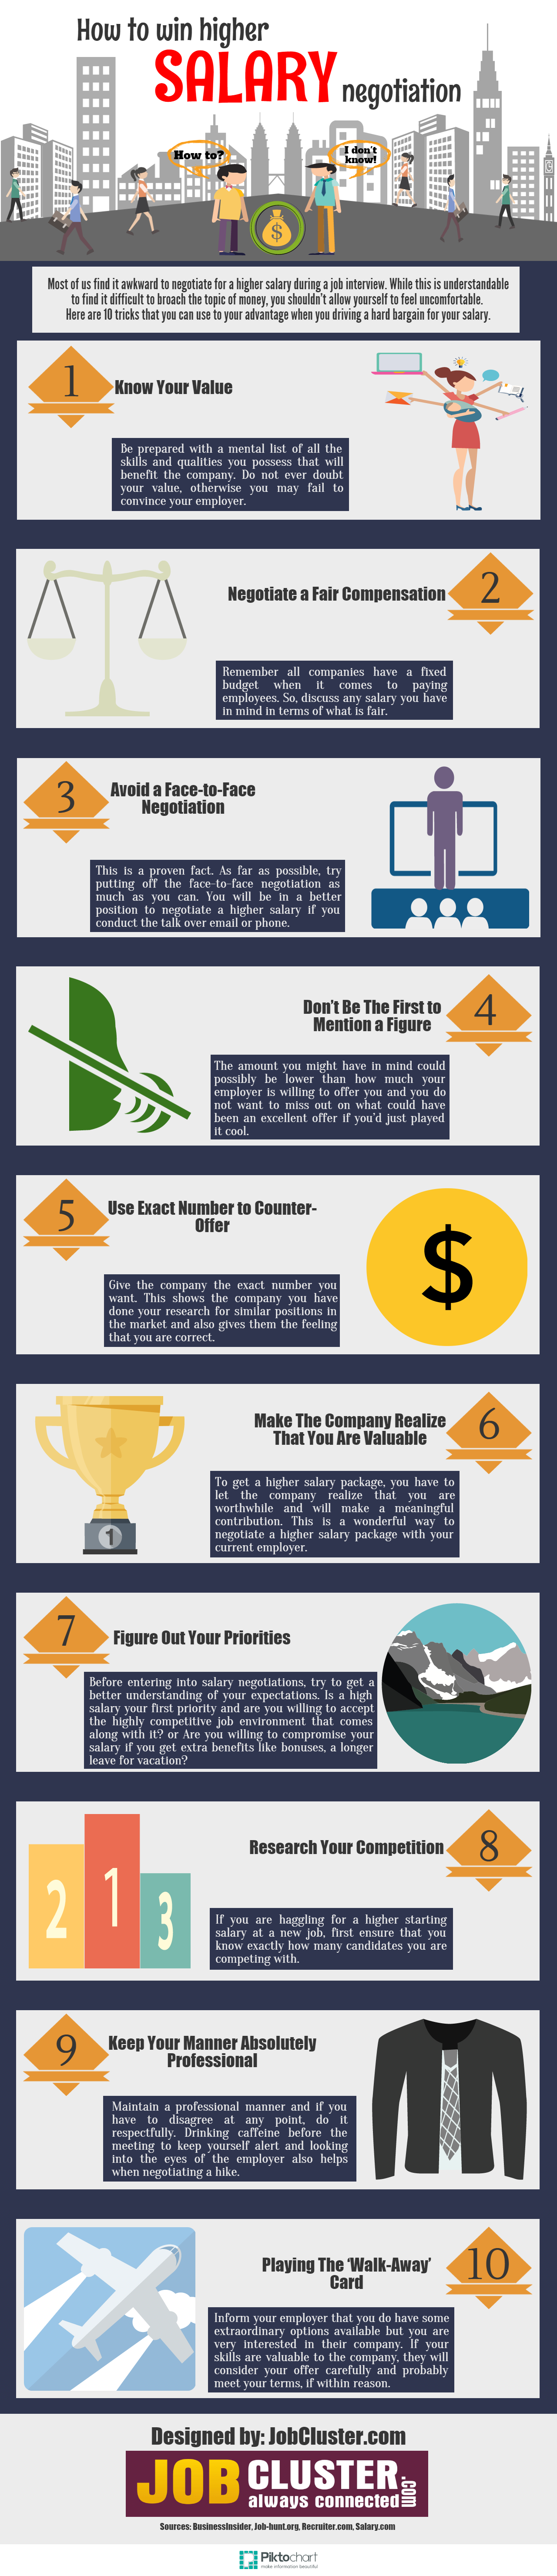 How-to-win-salary-negotiation-infographic-plaza